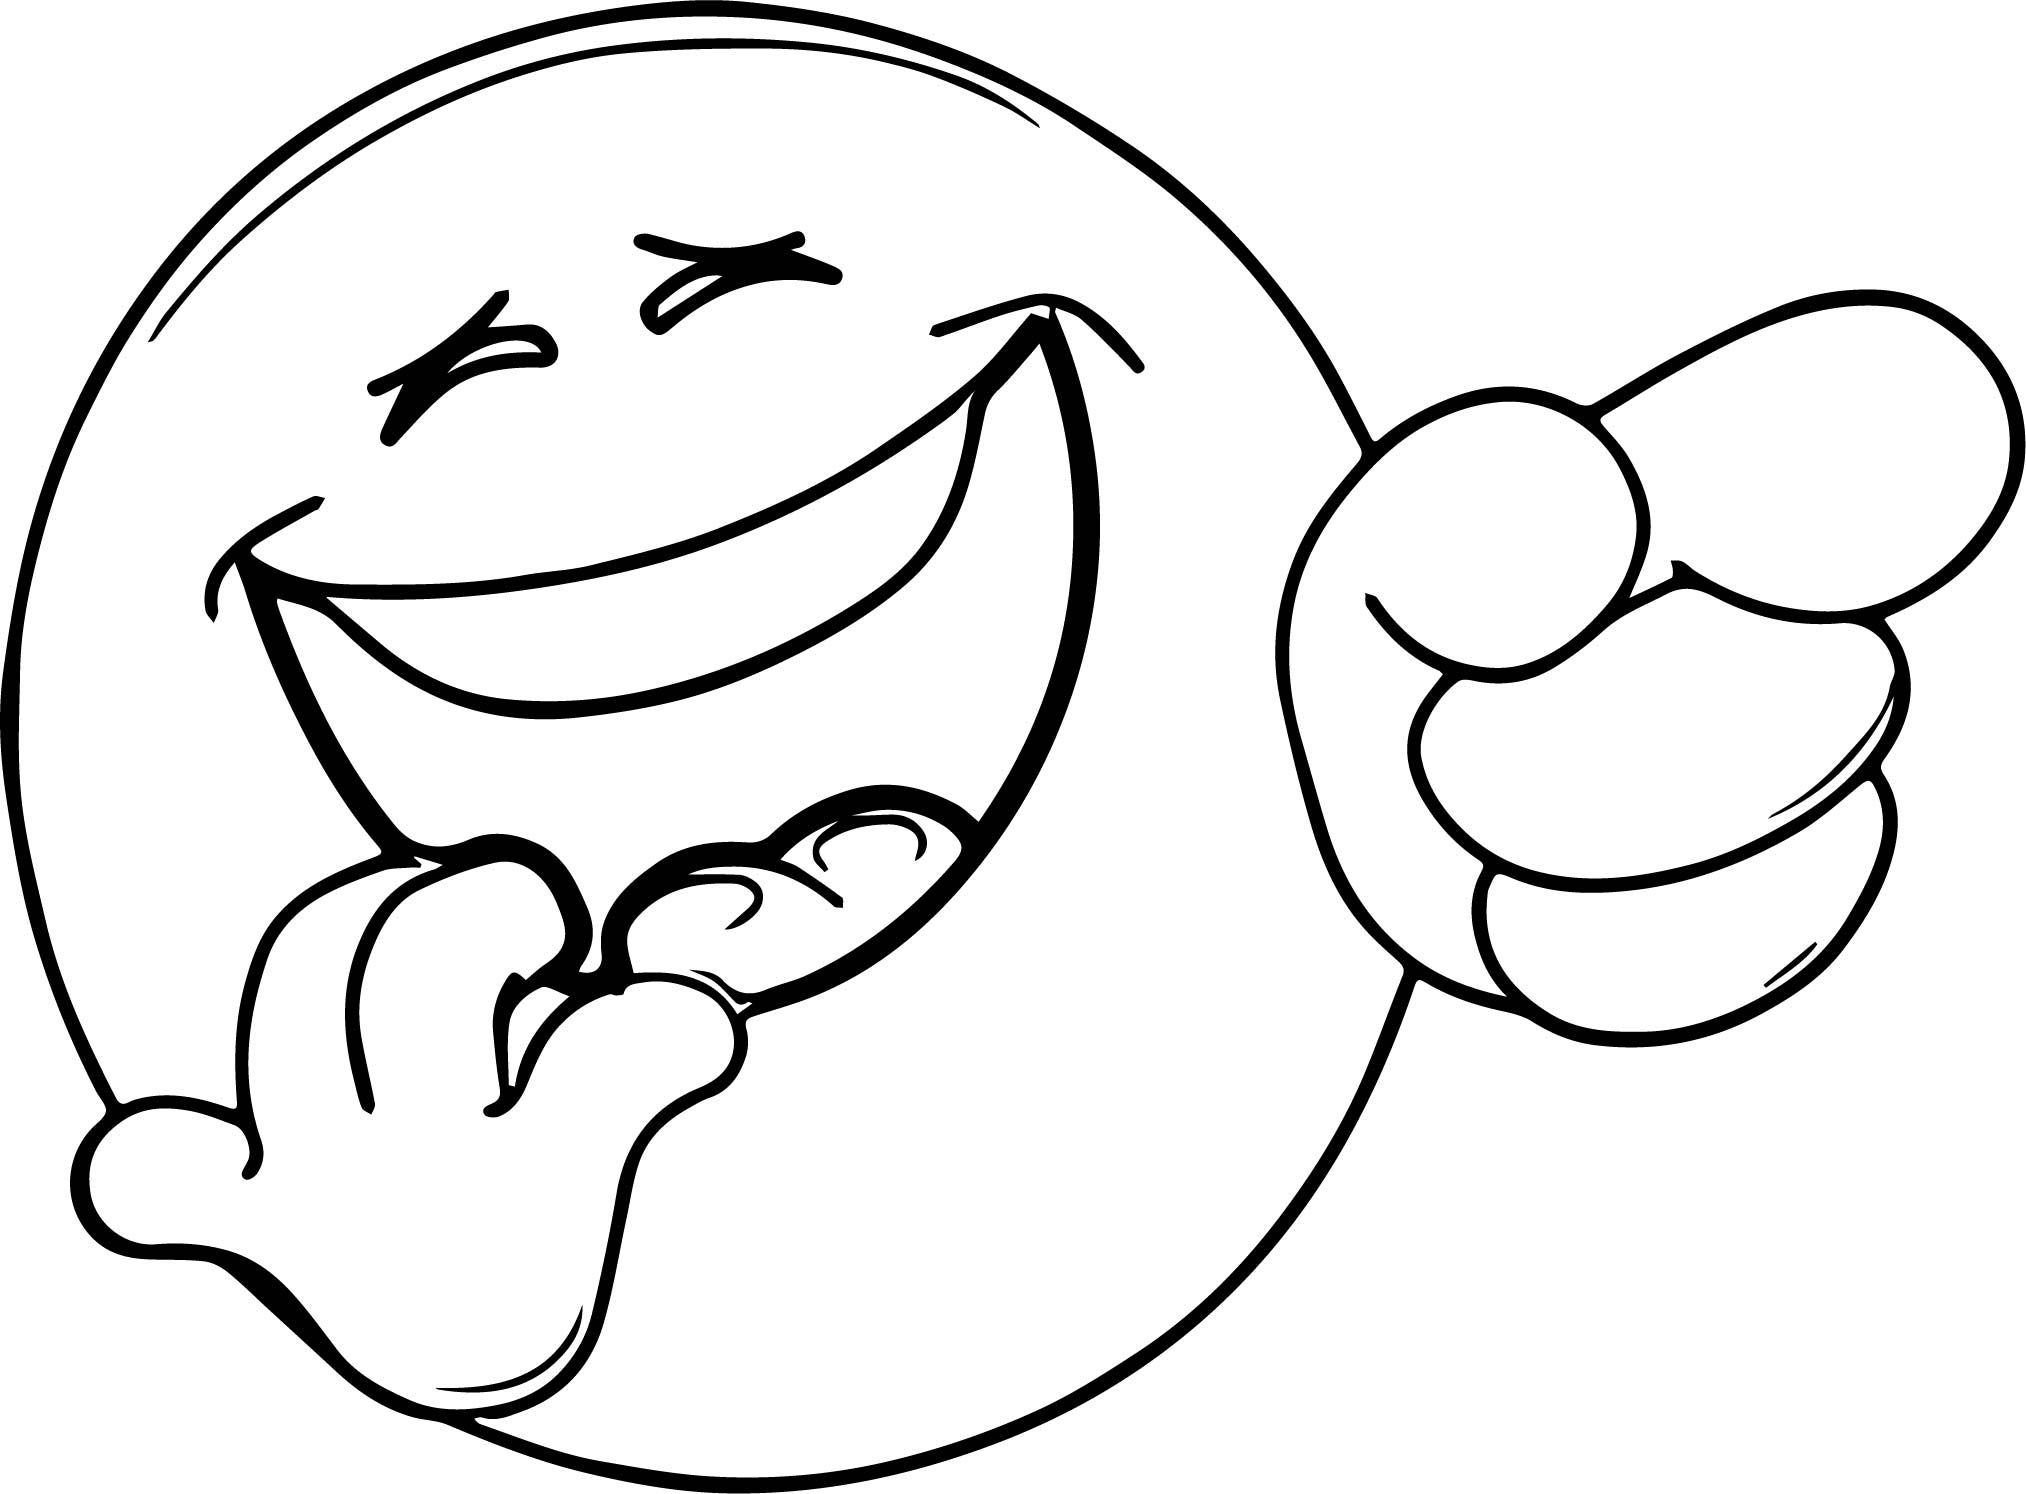 Cool Very Laugh Face Emoticon Coloring Page Emoji Coloring Pages Coloring Pages Batman Coloring Pages